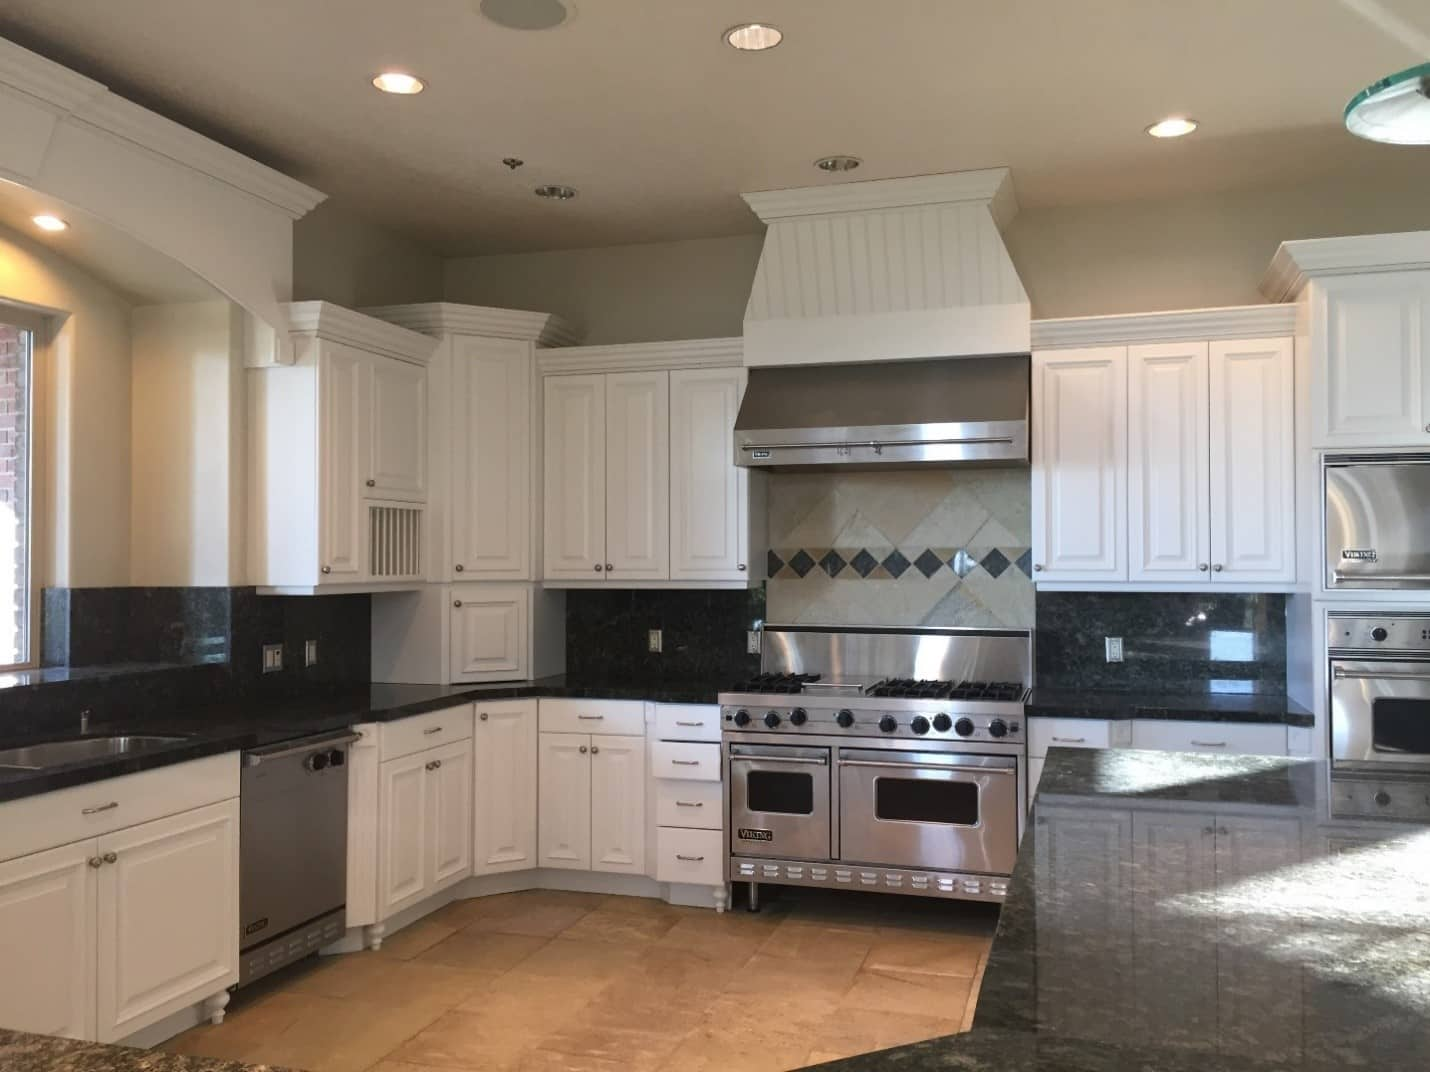 A stylish kitchen with stone countertops and newly painted drawers and cabinets